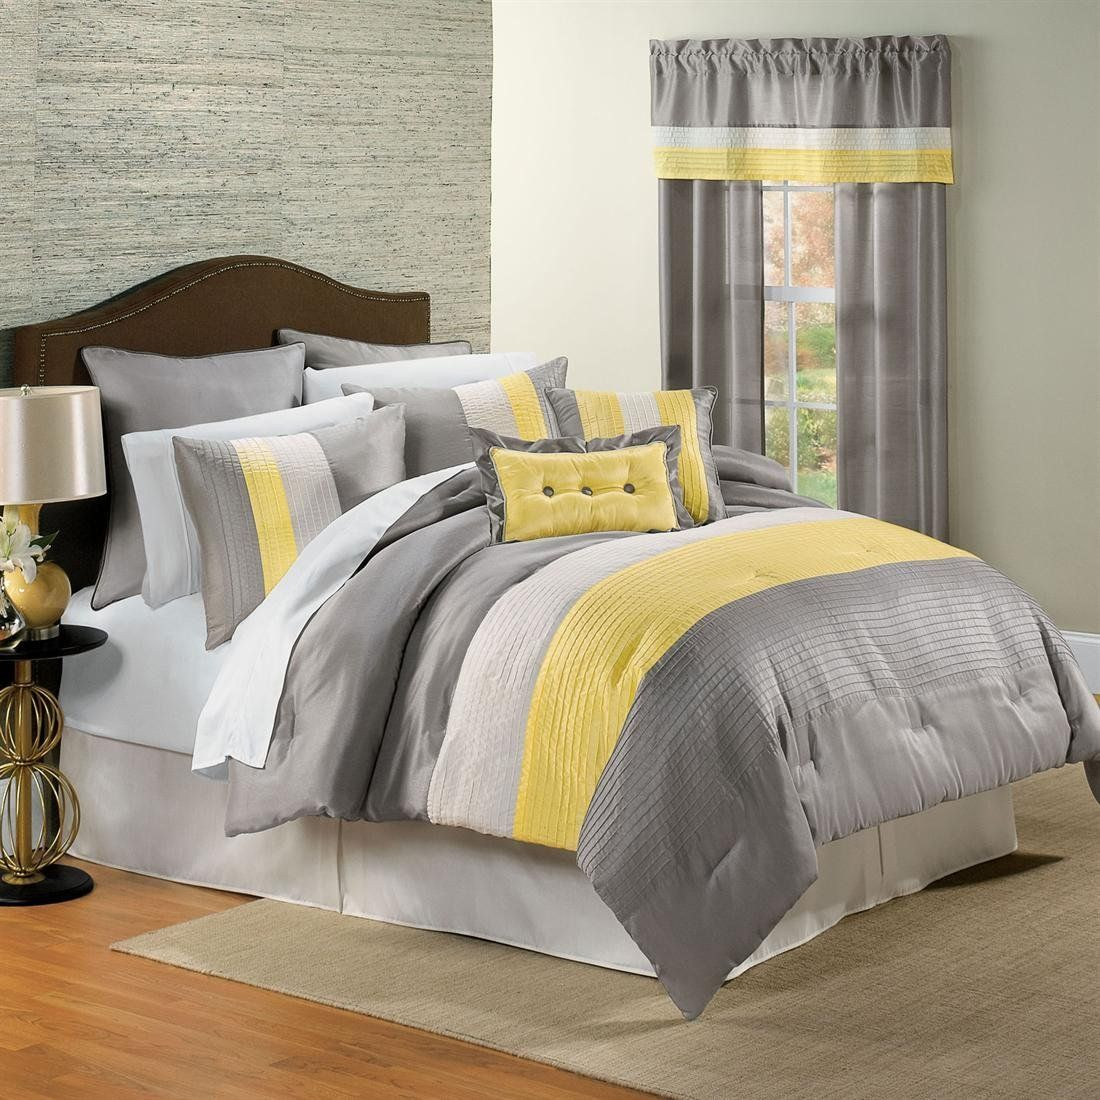 Room Design Yellow Gray Bedding Set